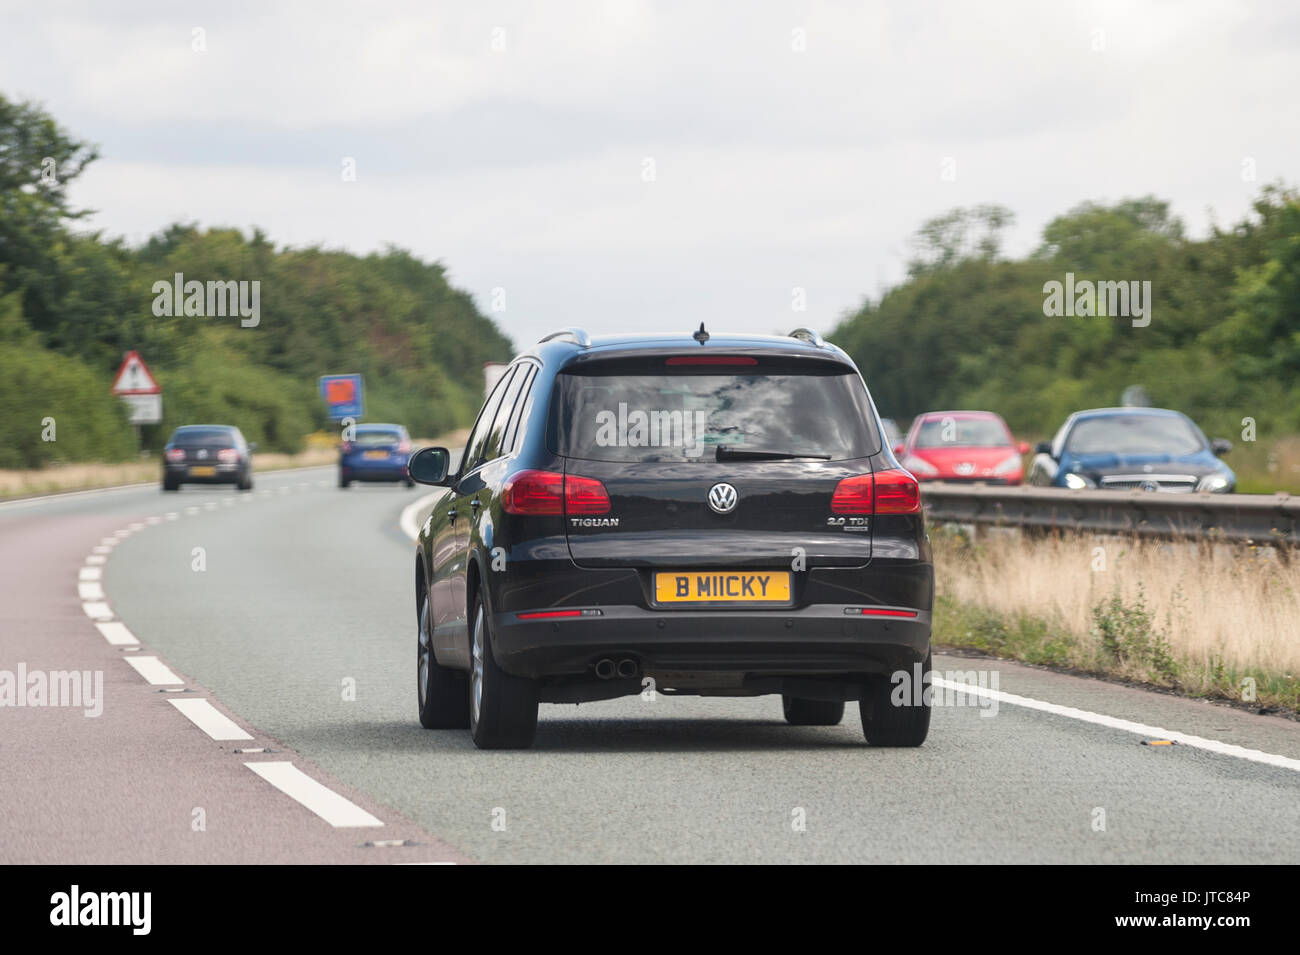 A VW Tiguan driving on a main road in the Uk - Stock Image